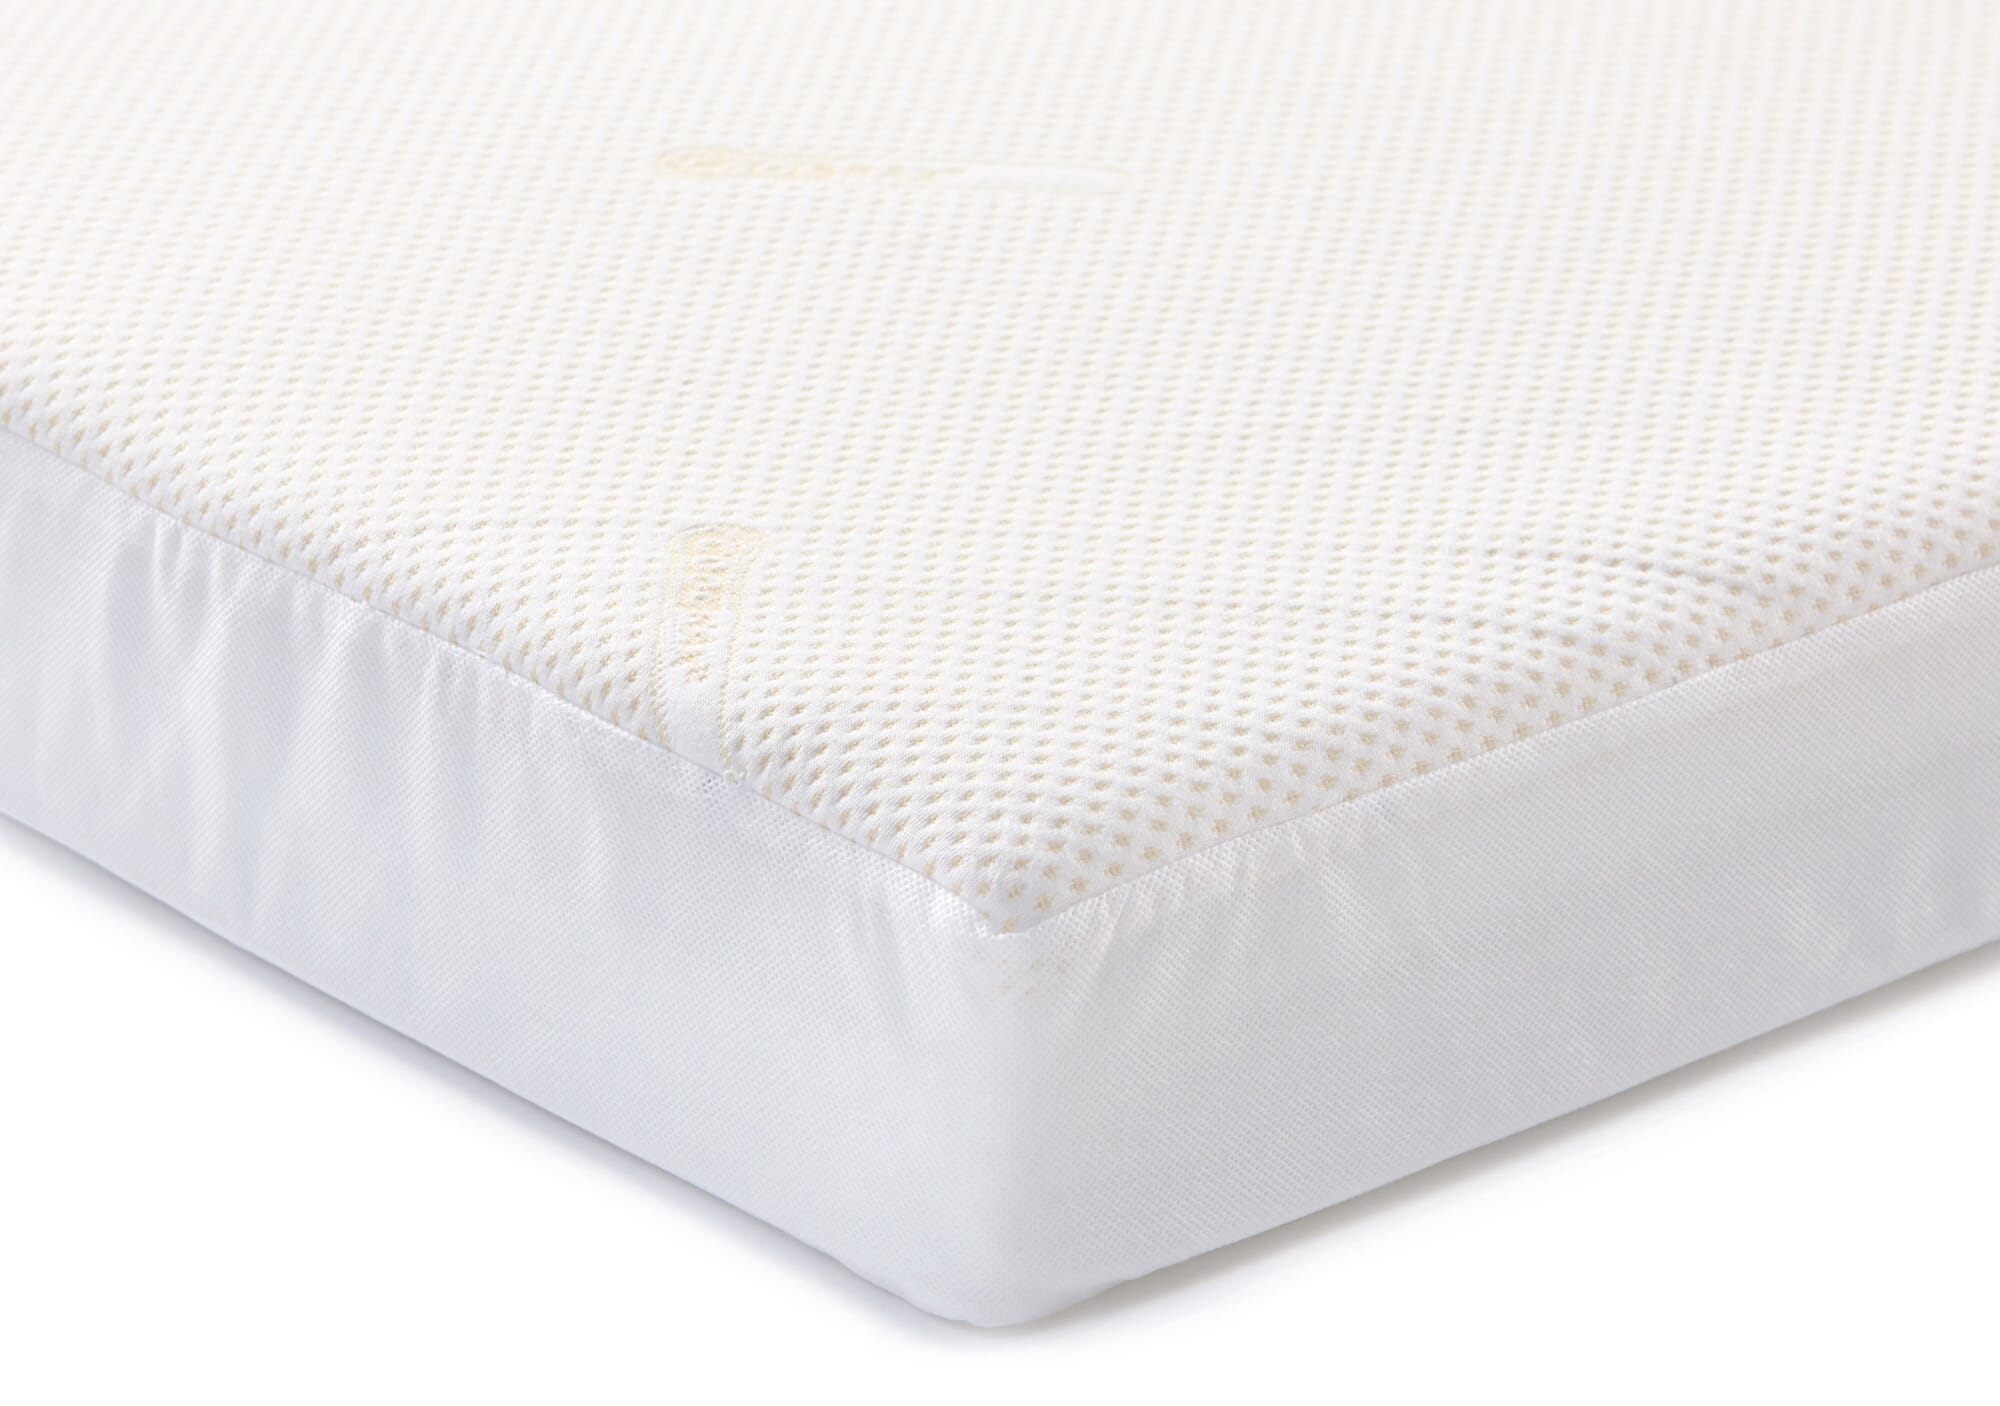 Fibre Pocket Spring Cot Bed Mattress